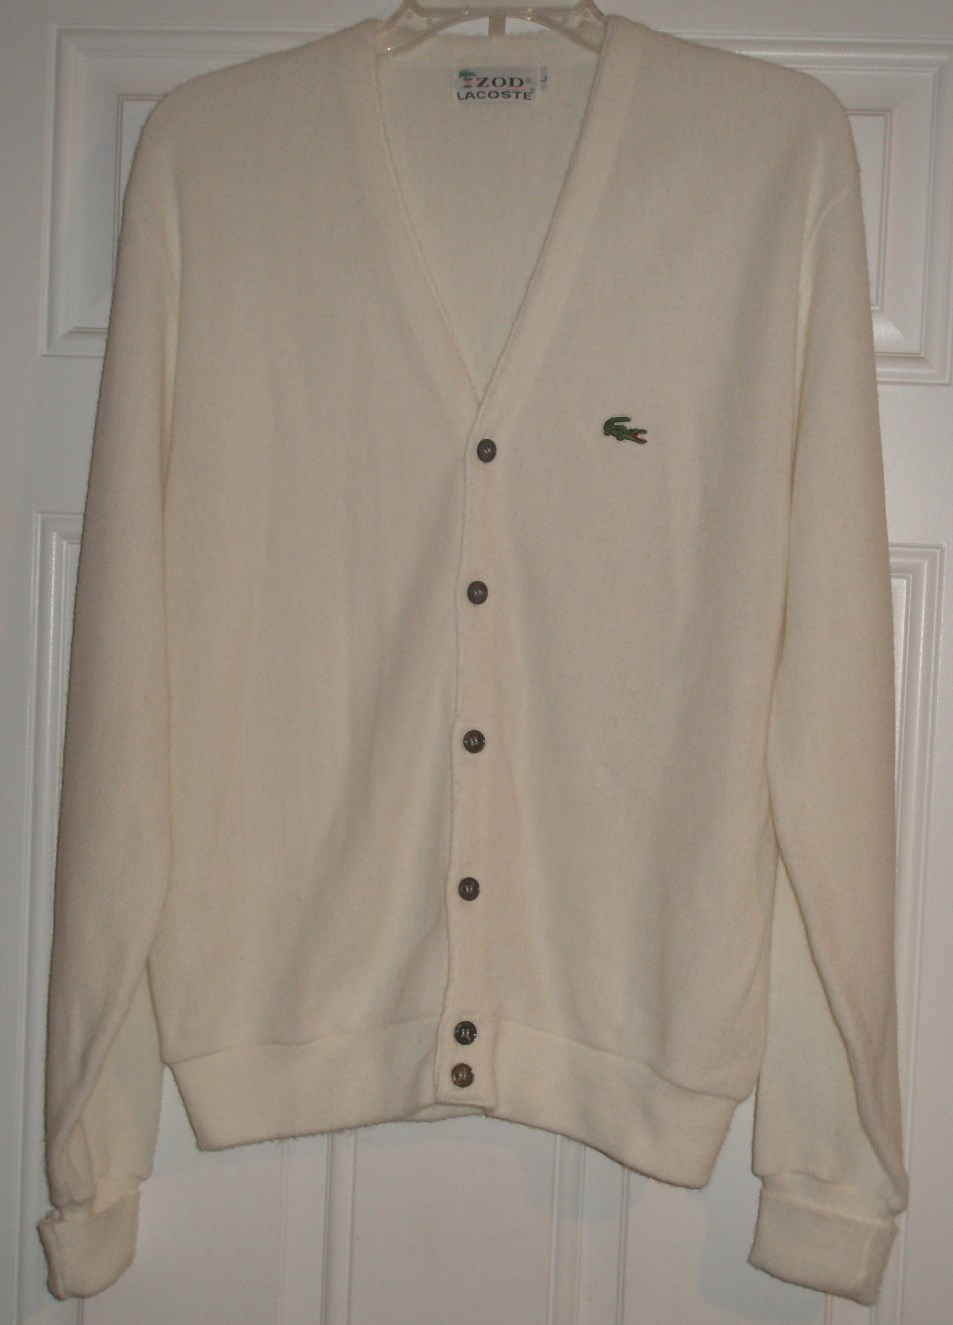 9e2368a2b New Izod Lacoste Vintage Ivory Cardigan Sweater Mens Size L -Large